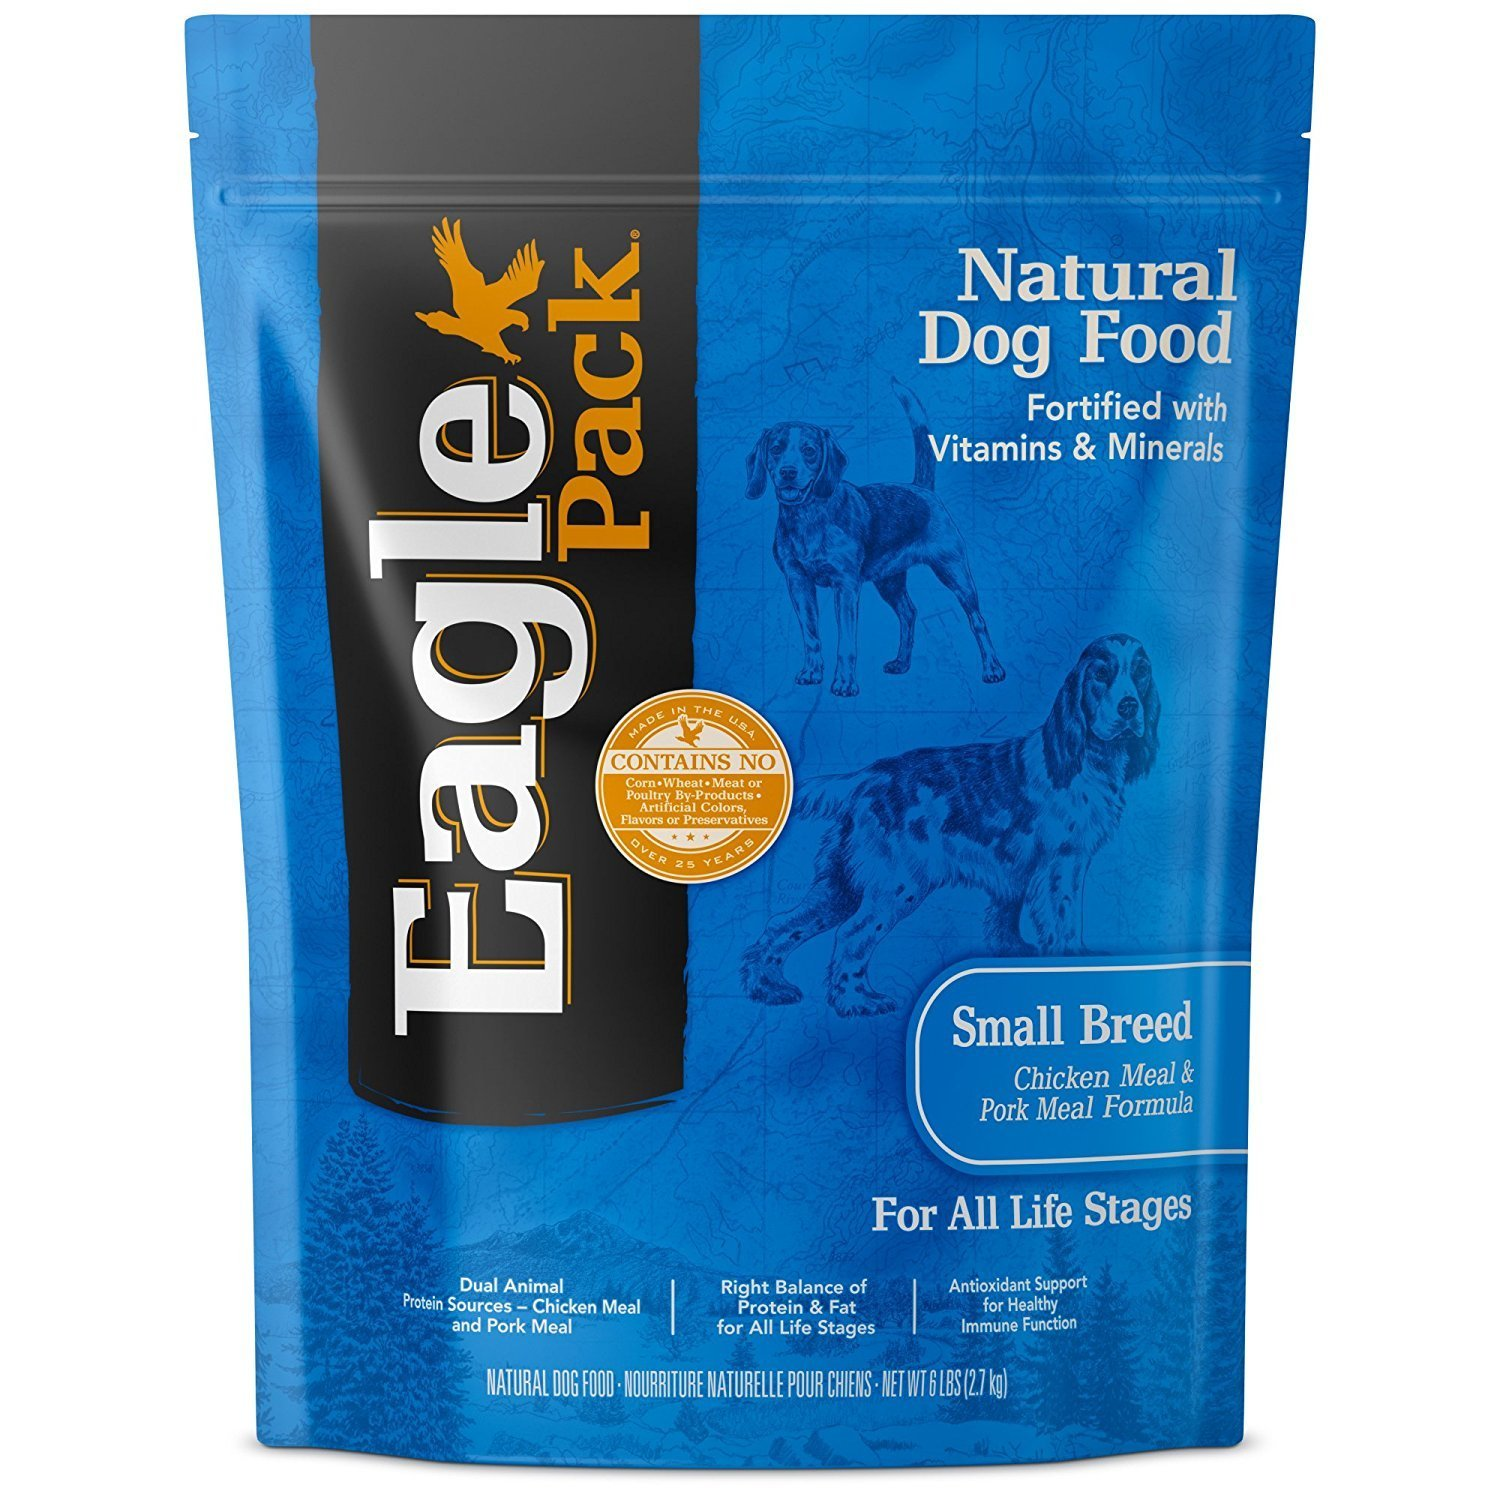 Eagle Pack Natural Pet Food, Original Adult Pork Meal and Chicken Meal Small Breed Formula for Dogs, 15-Pound Bag